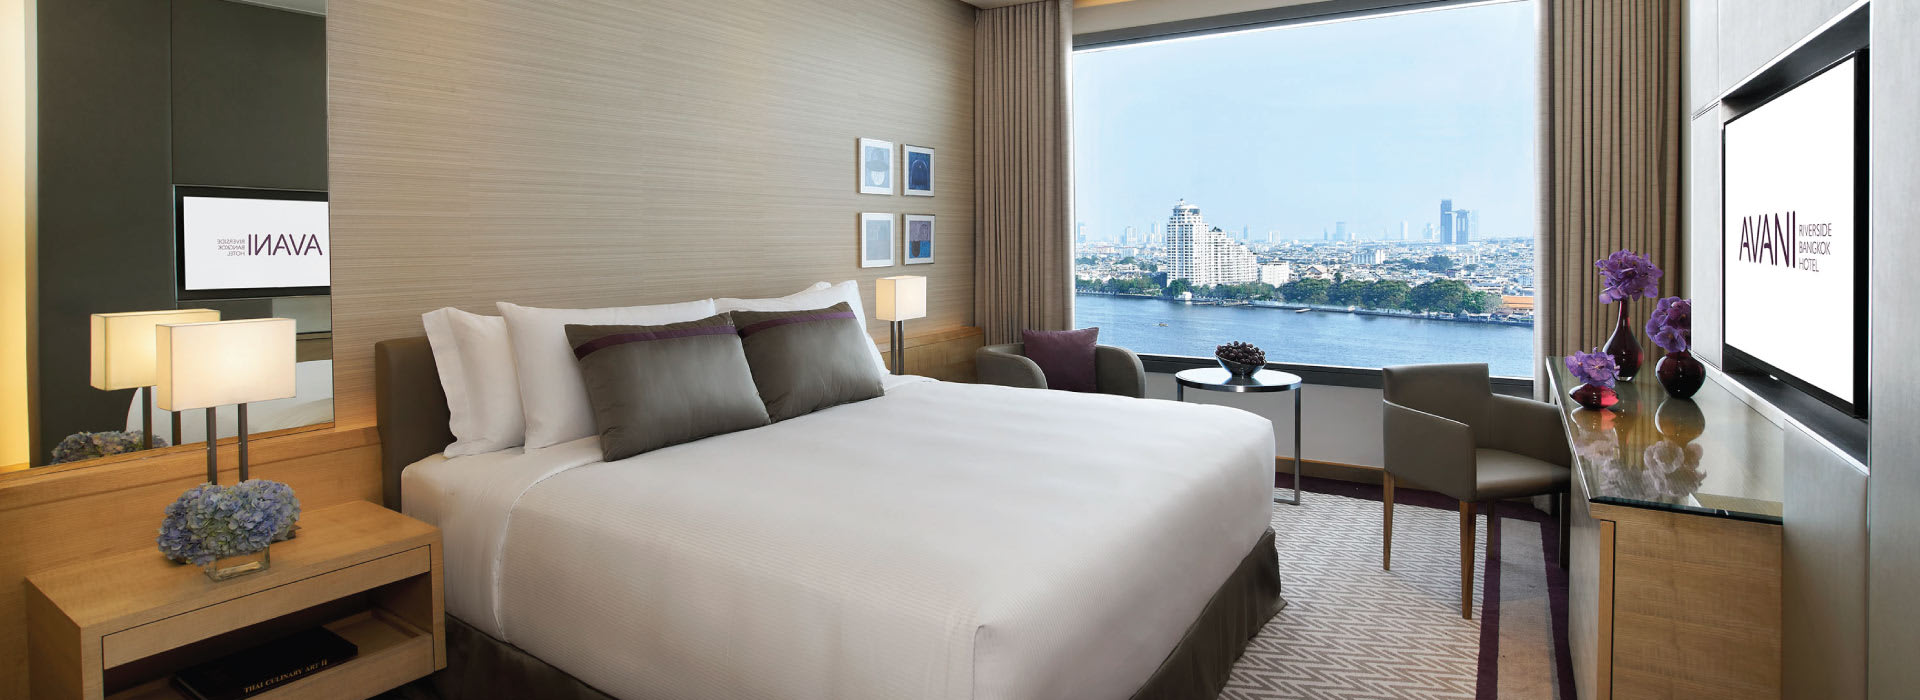 Interior of a River view room by AVANI Riverside Bangkok